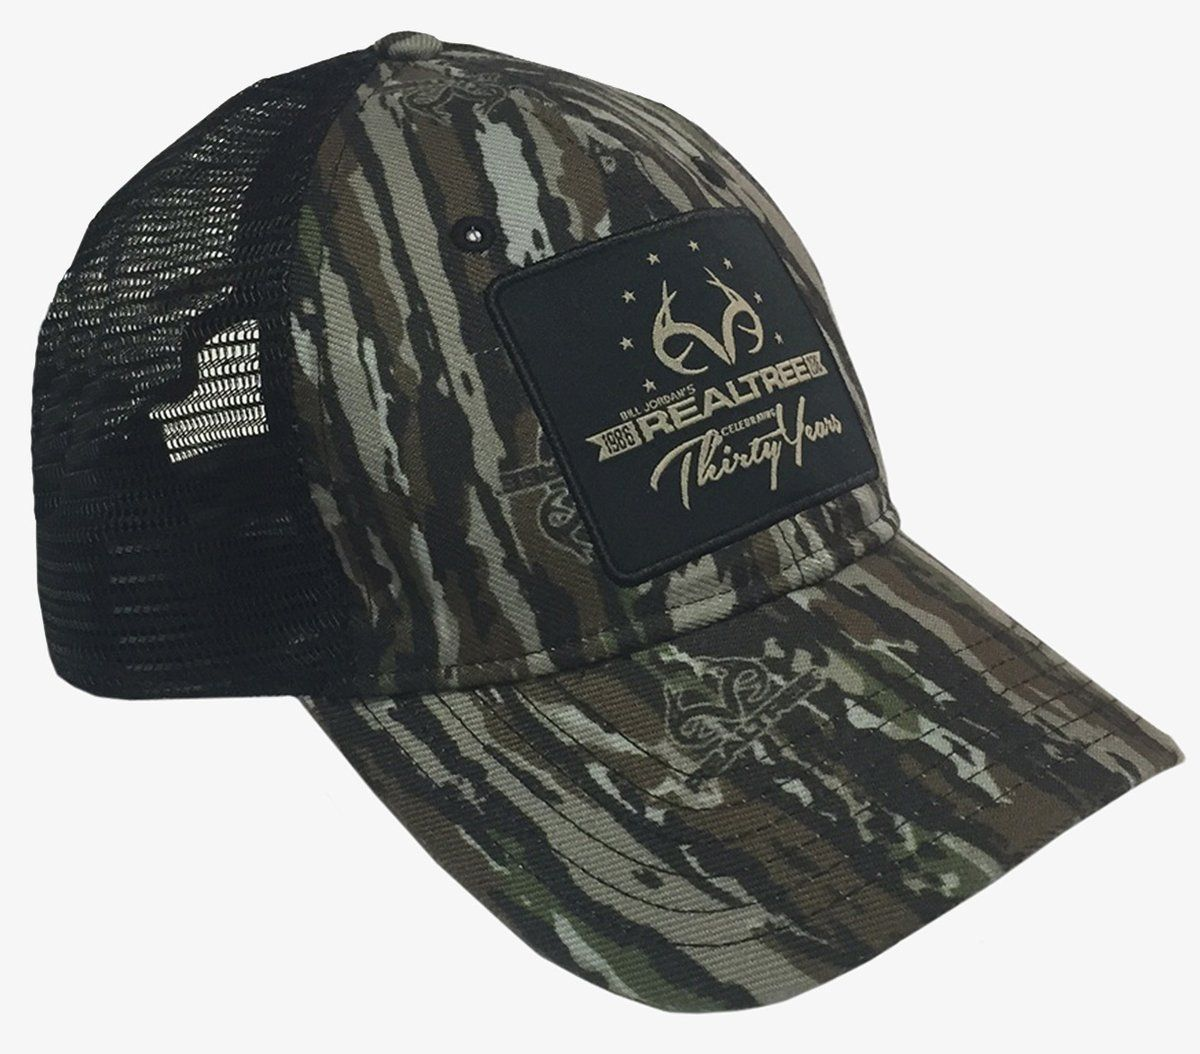 Original 30th Anniversary Trucker Hat http://realtr.ee/932  Celebrate with us in our original pattern!